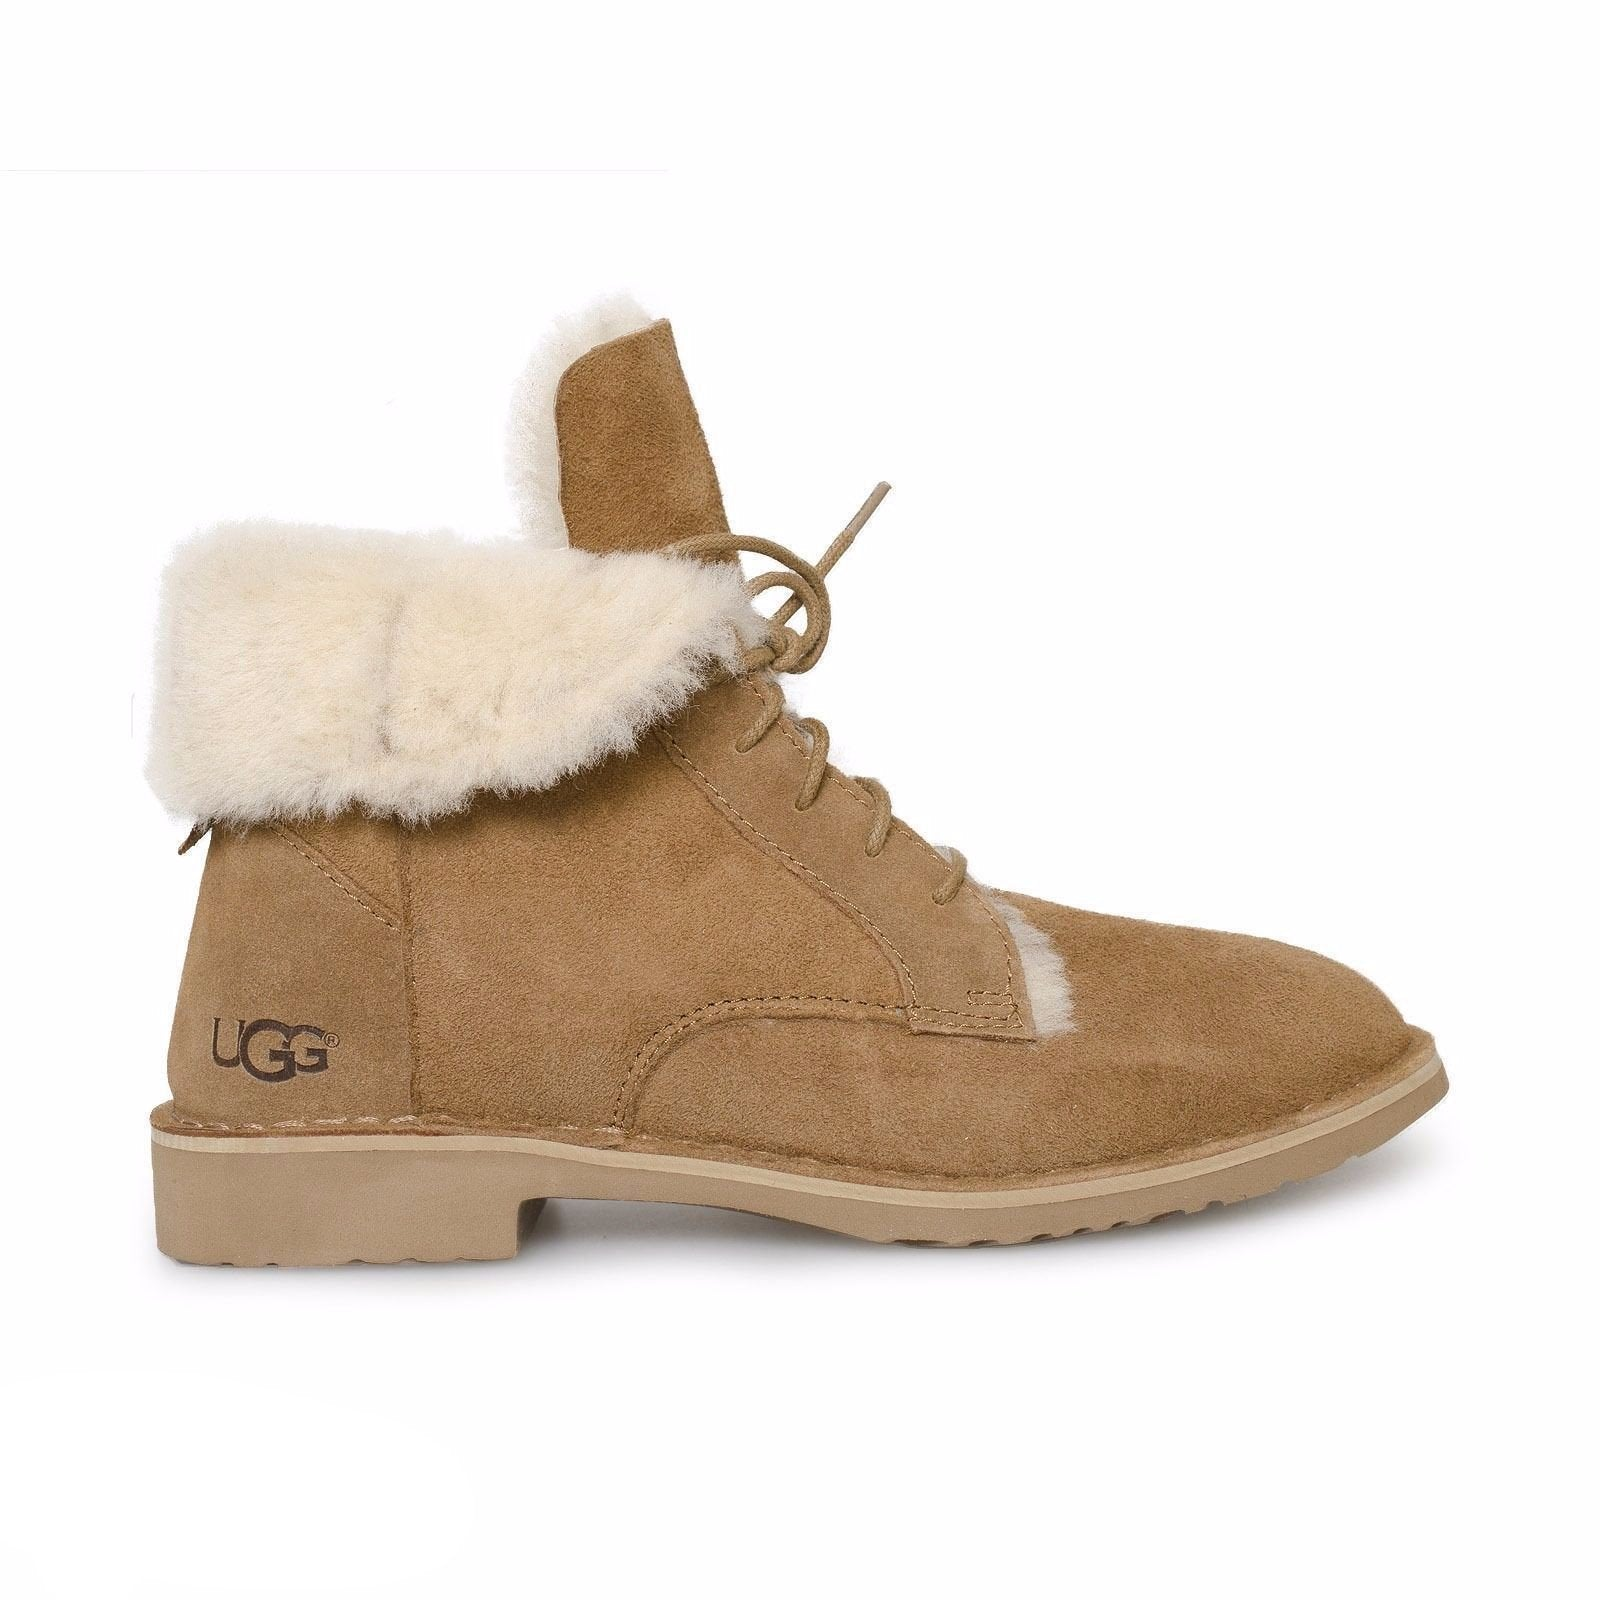 c9be9db6eb4 UGG Quincy Chestnut Boots